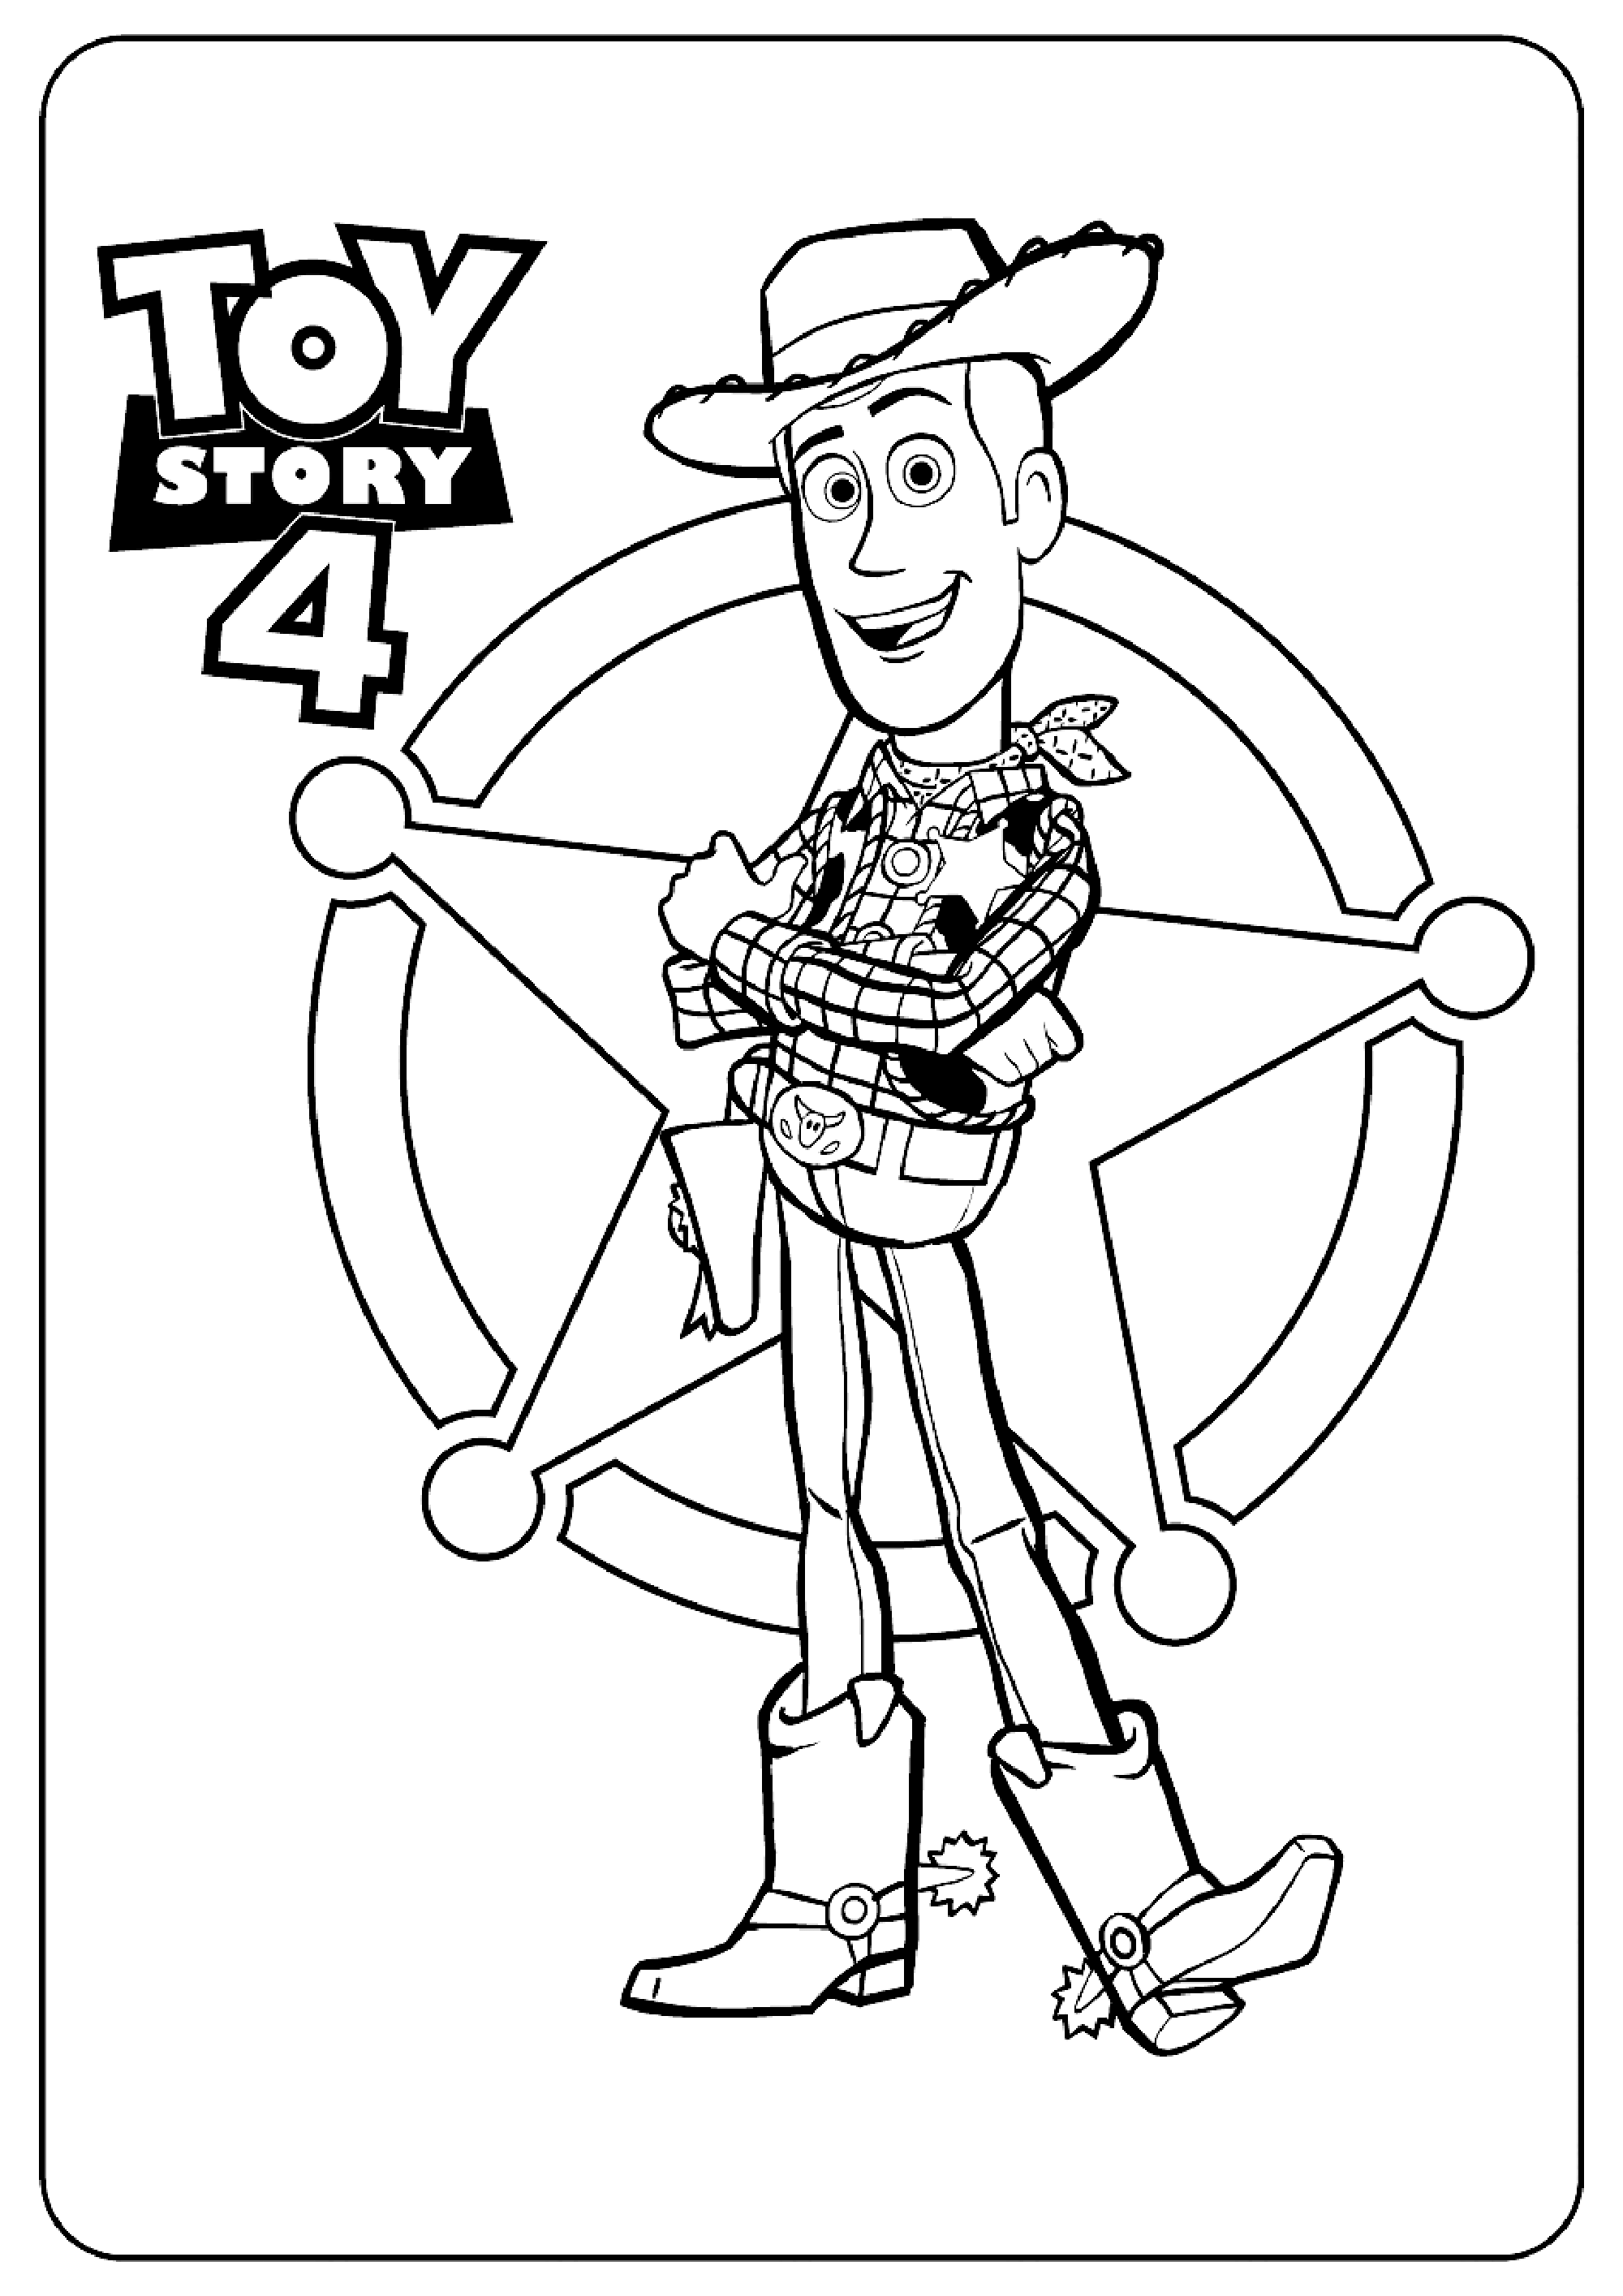 Woody Toy Story 4 Disney Pixar Coloring Pages Toy Story 4